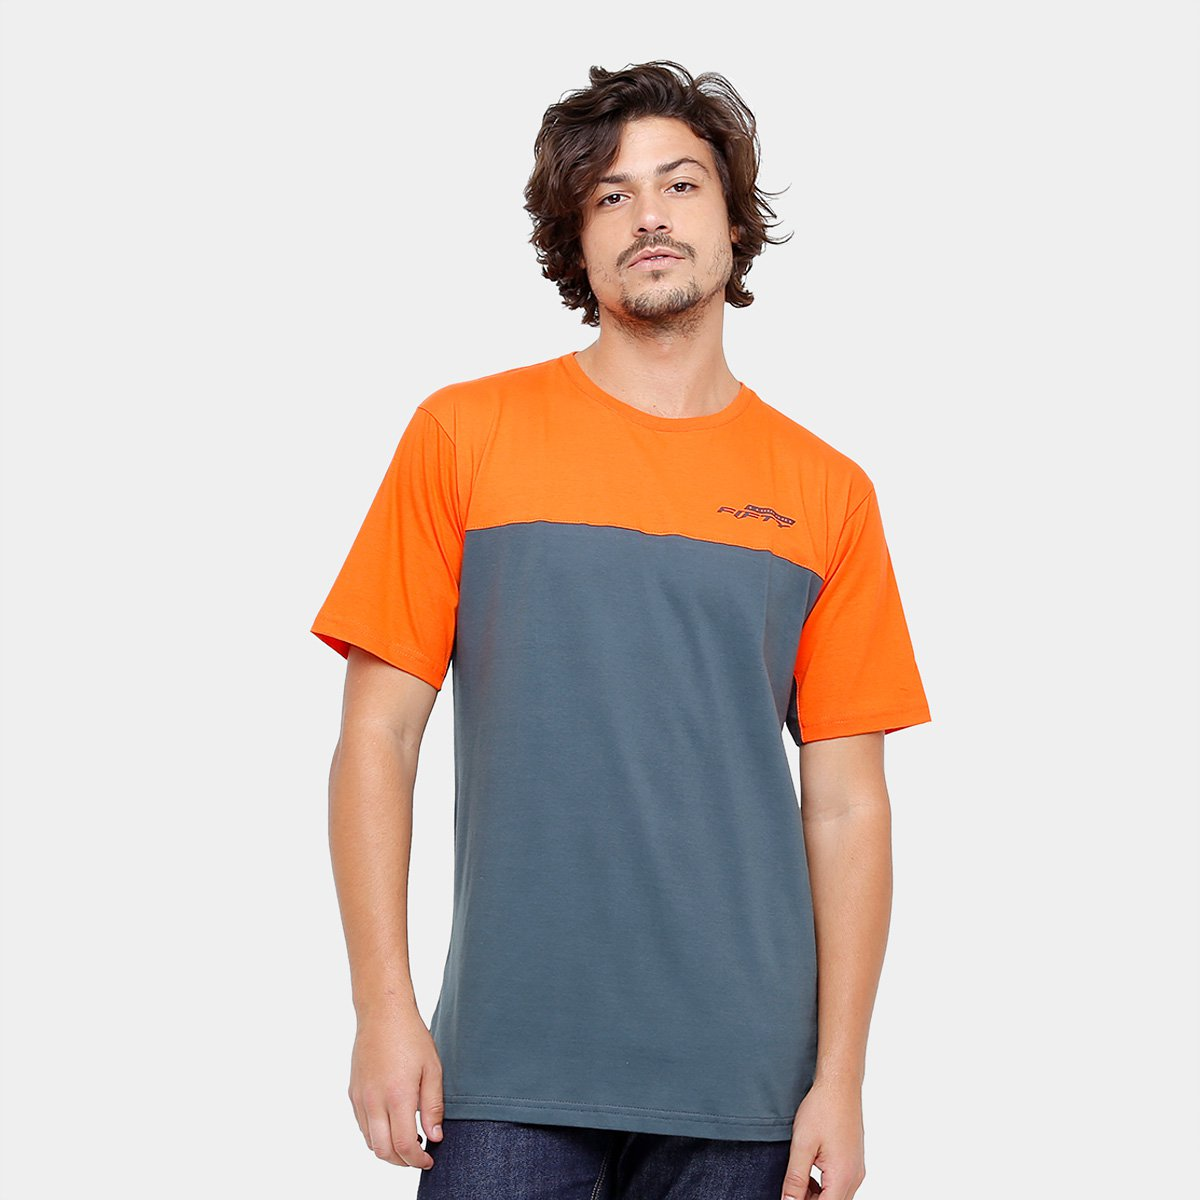 Camiseta Camaro Double Fifty Masculina